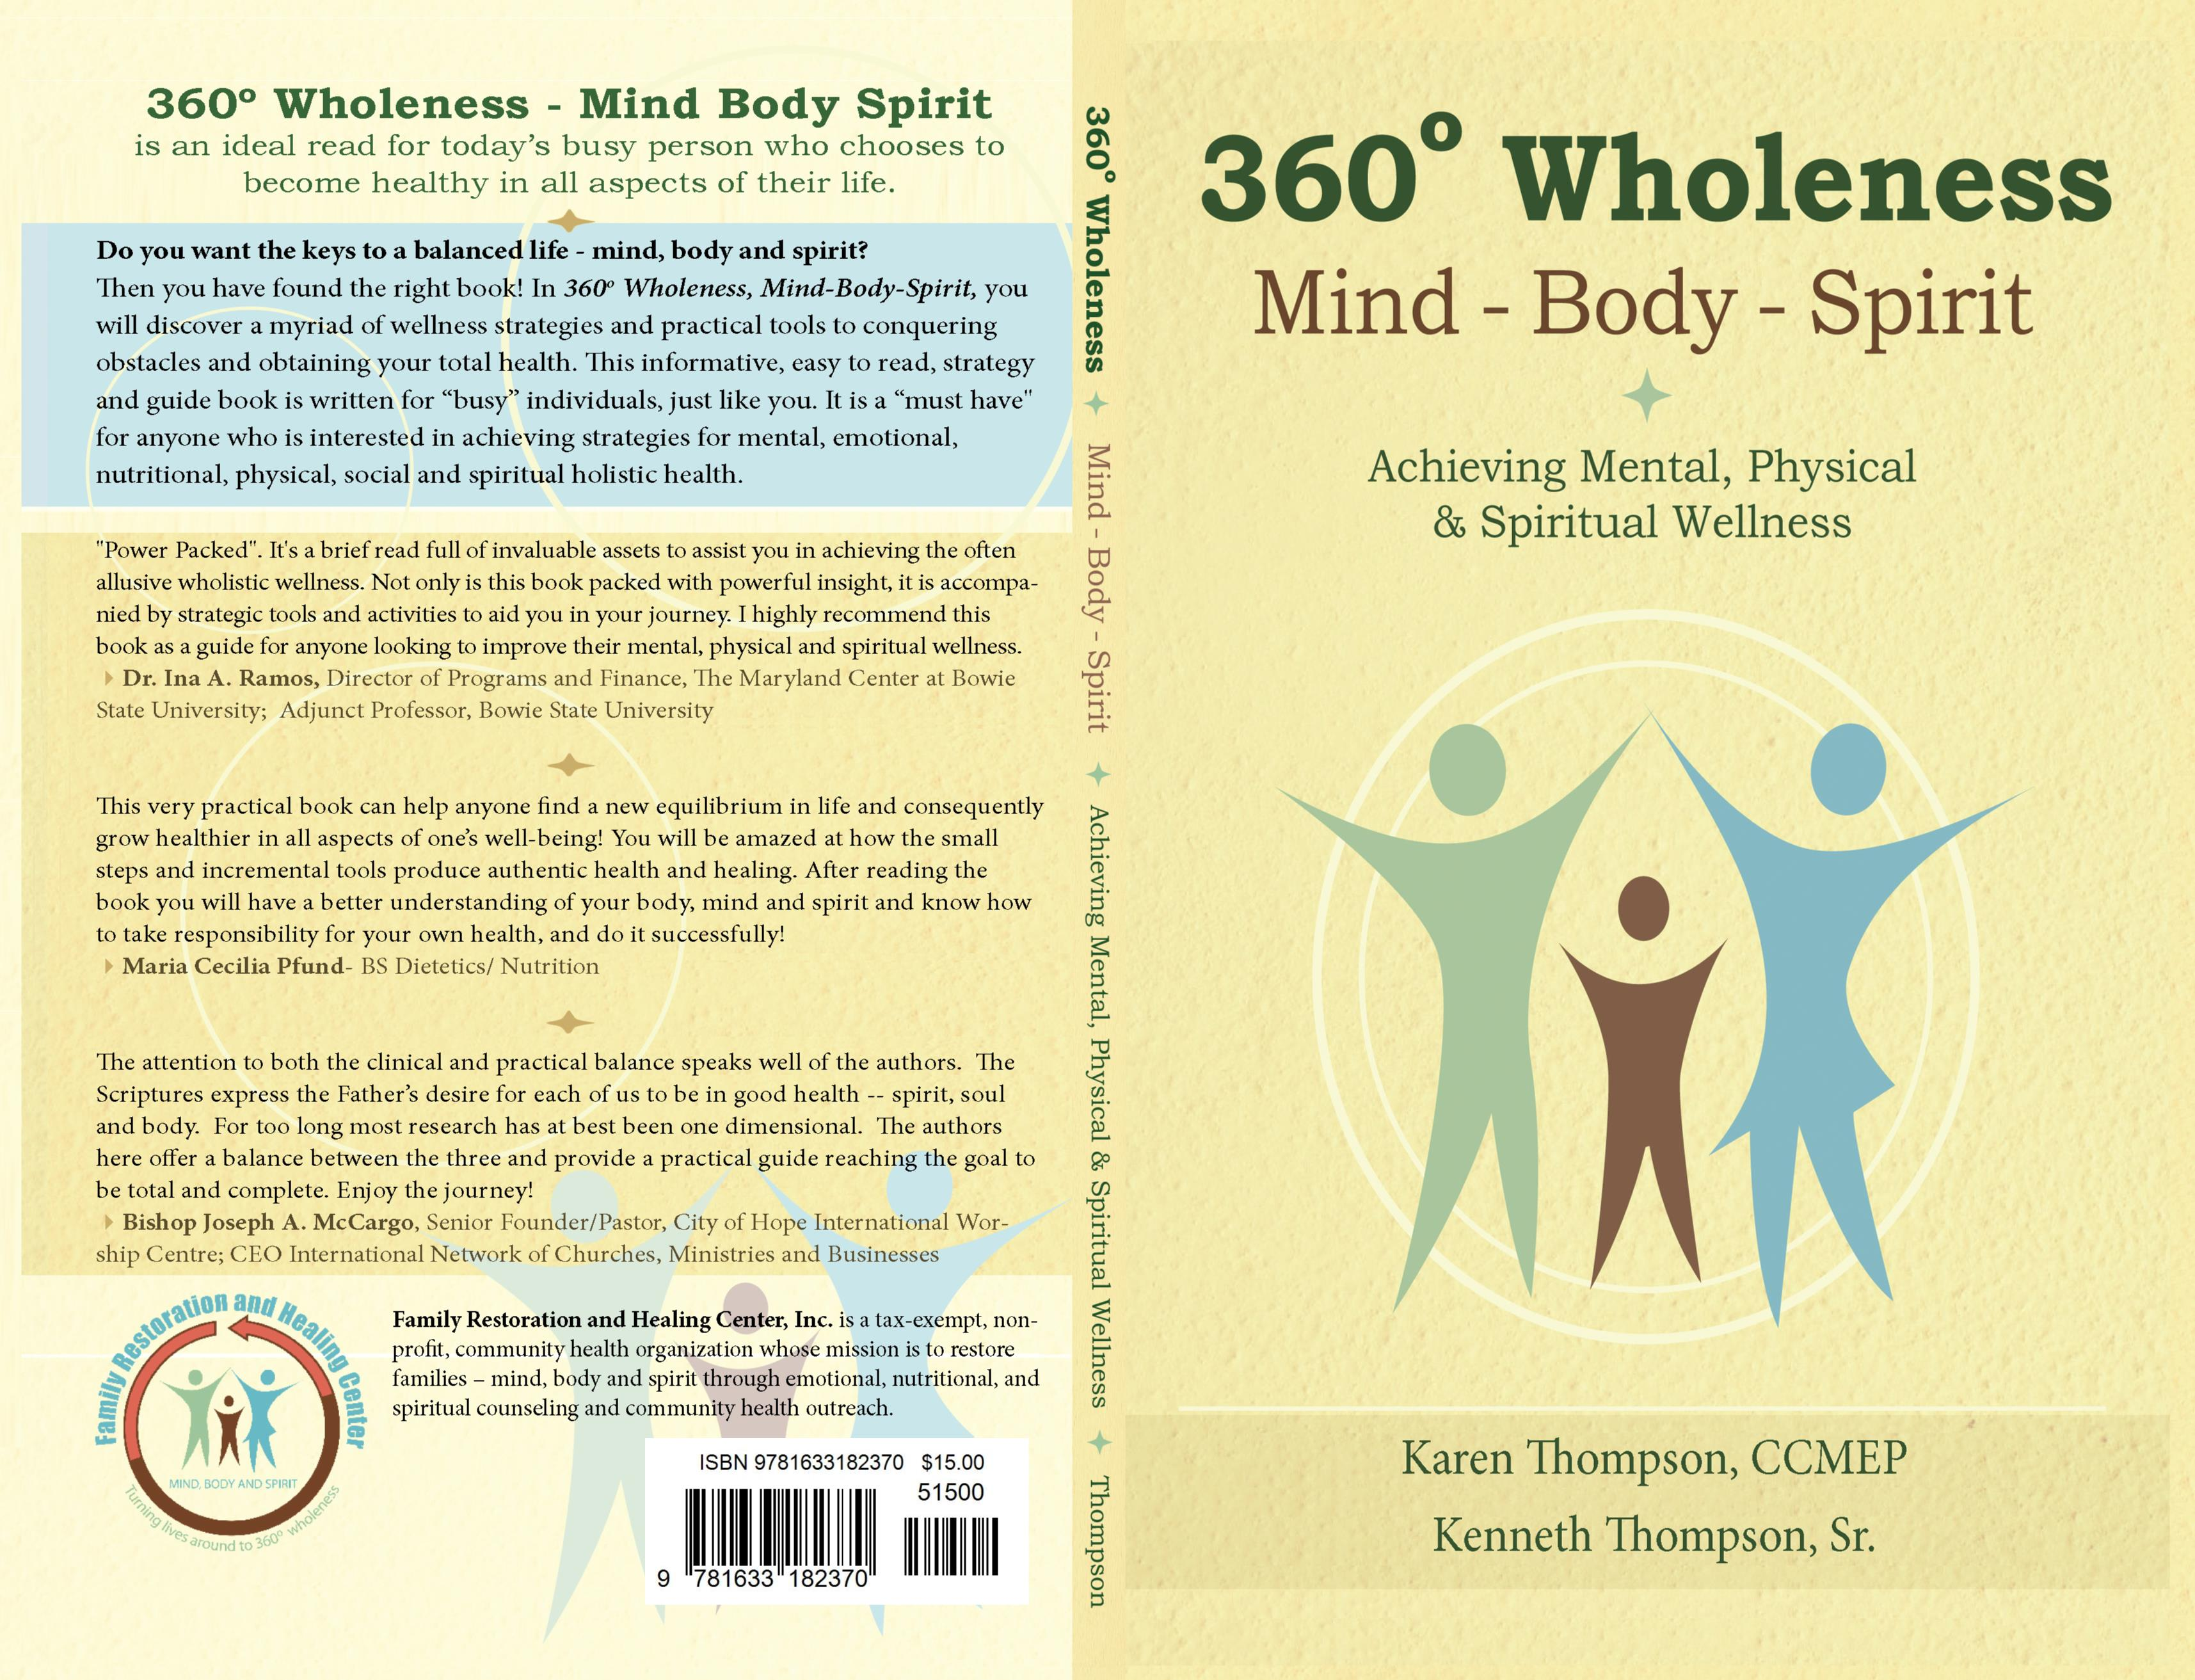 360o Wholeness, Mind-Body-Spirit cover image